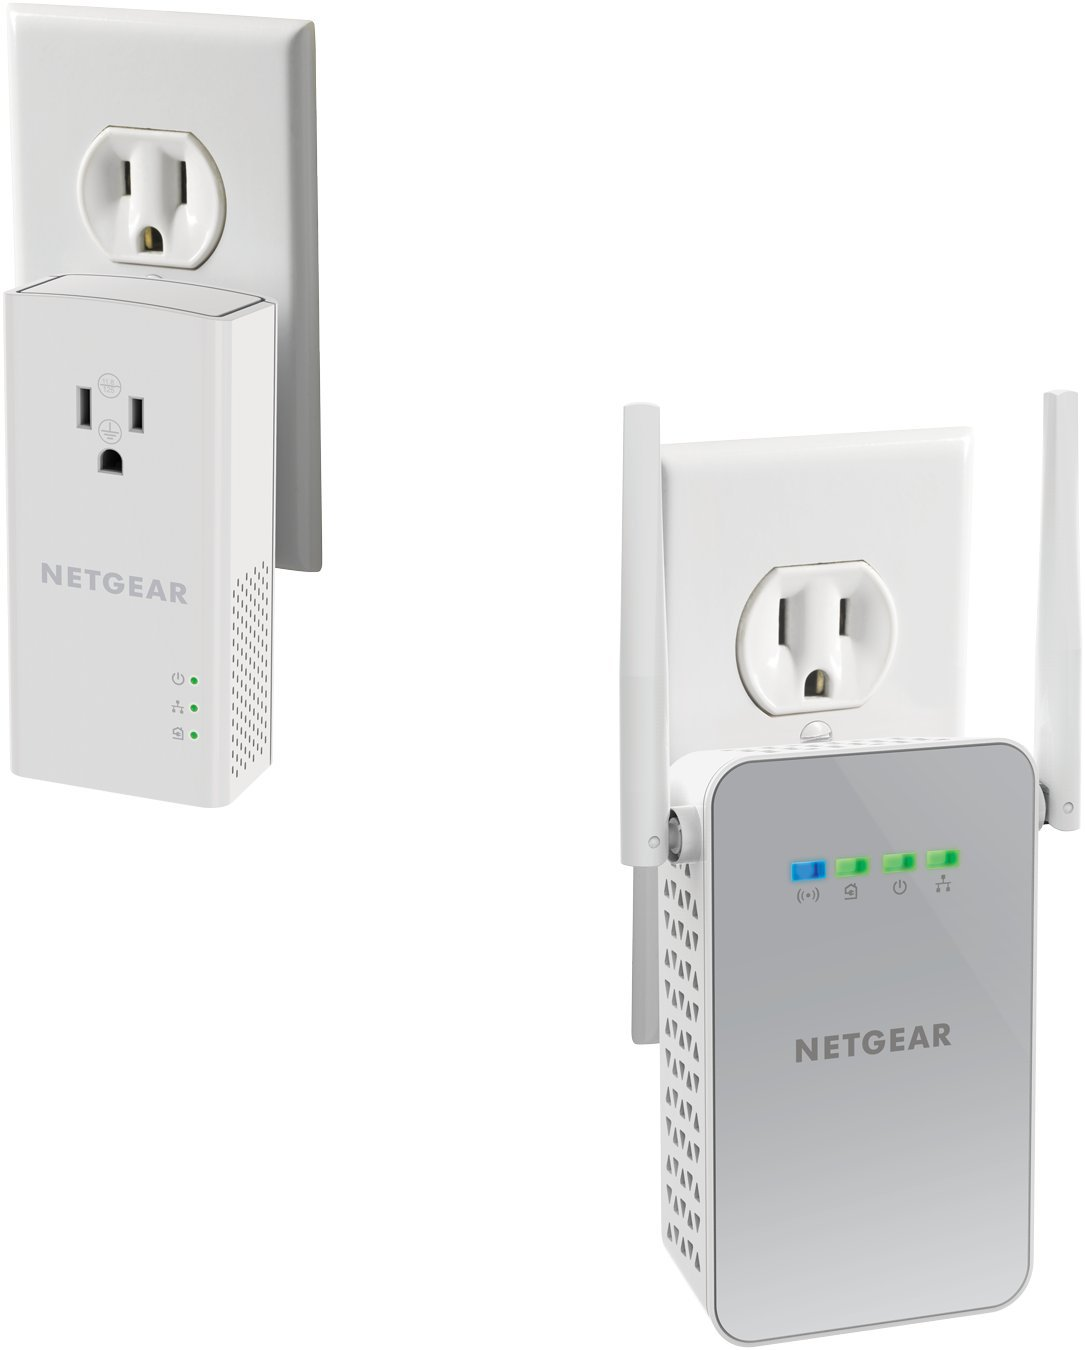 NETGEAR PowerLINE Wi-Fi 1000 + Extra Outlet, White (PLPW1000-100NAS) by NETGEAR